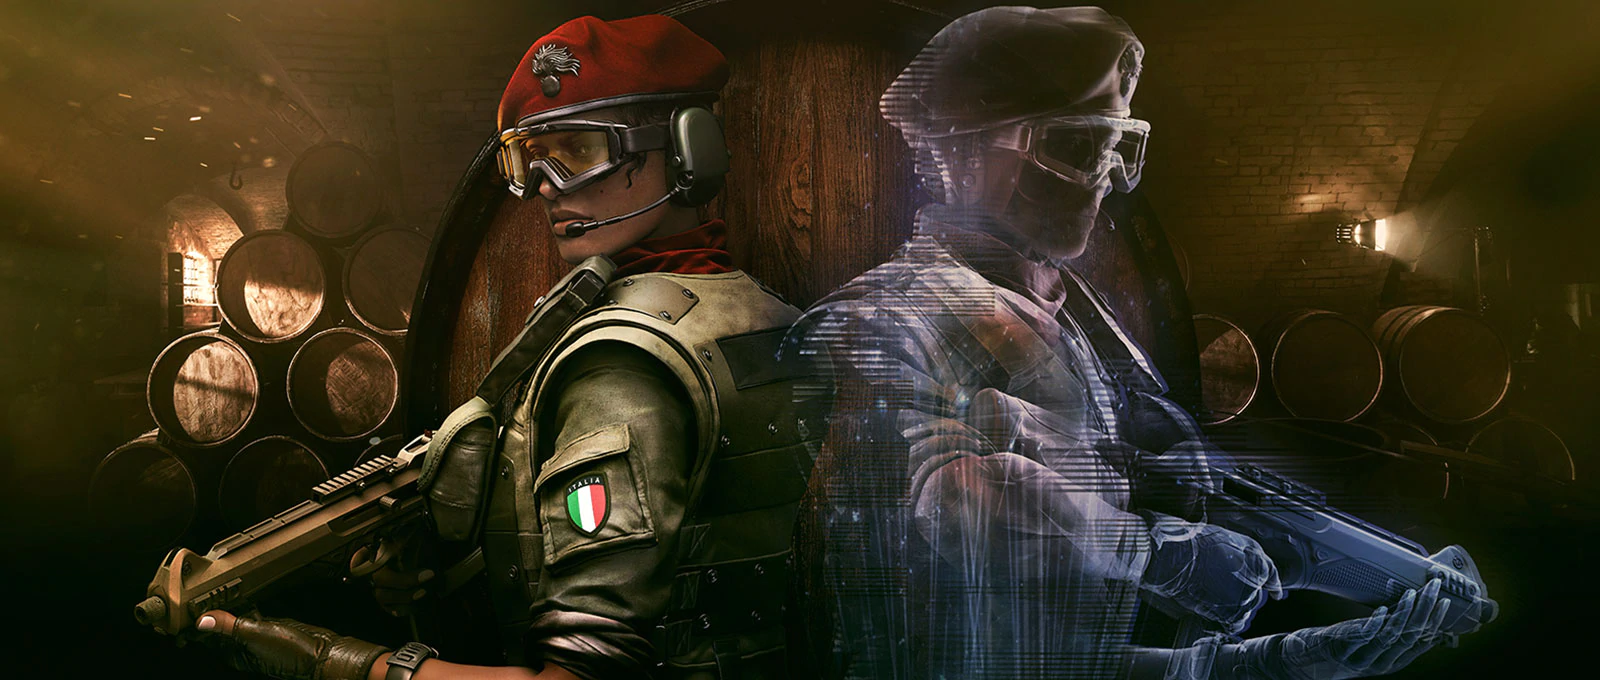 Rainbow Six Siege could become free-to-play eventually if Ubisoft solves smurfing